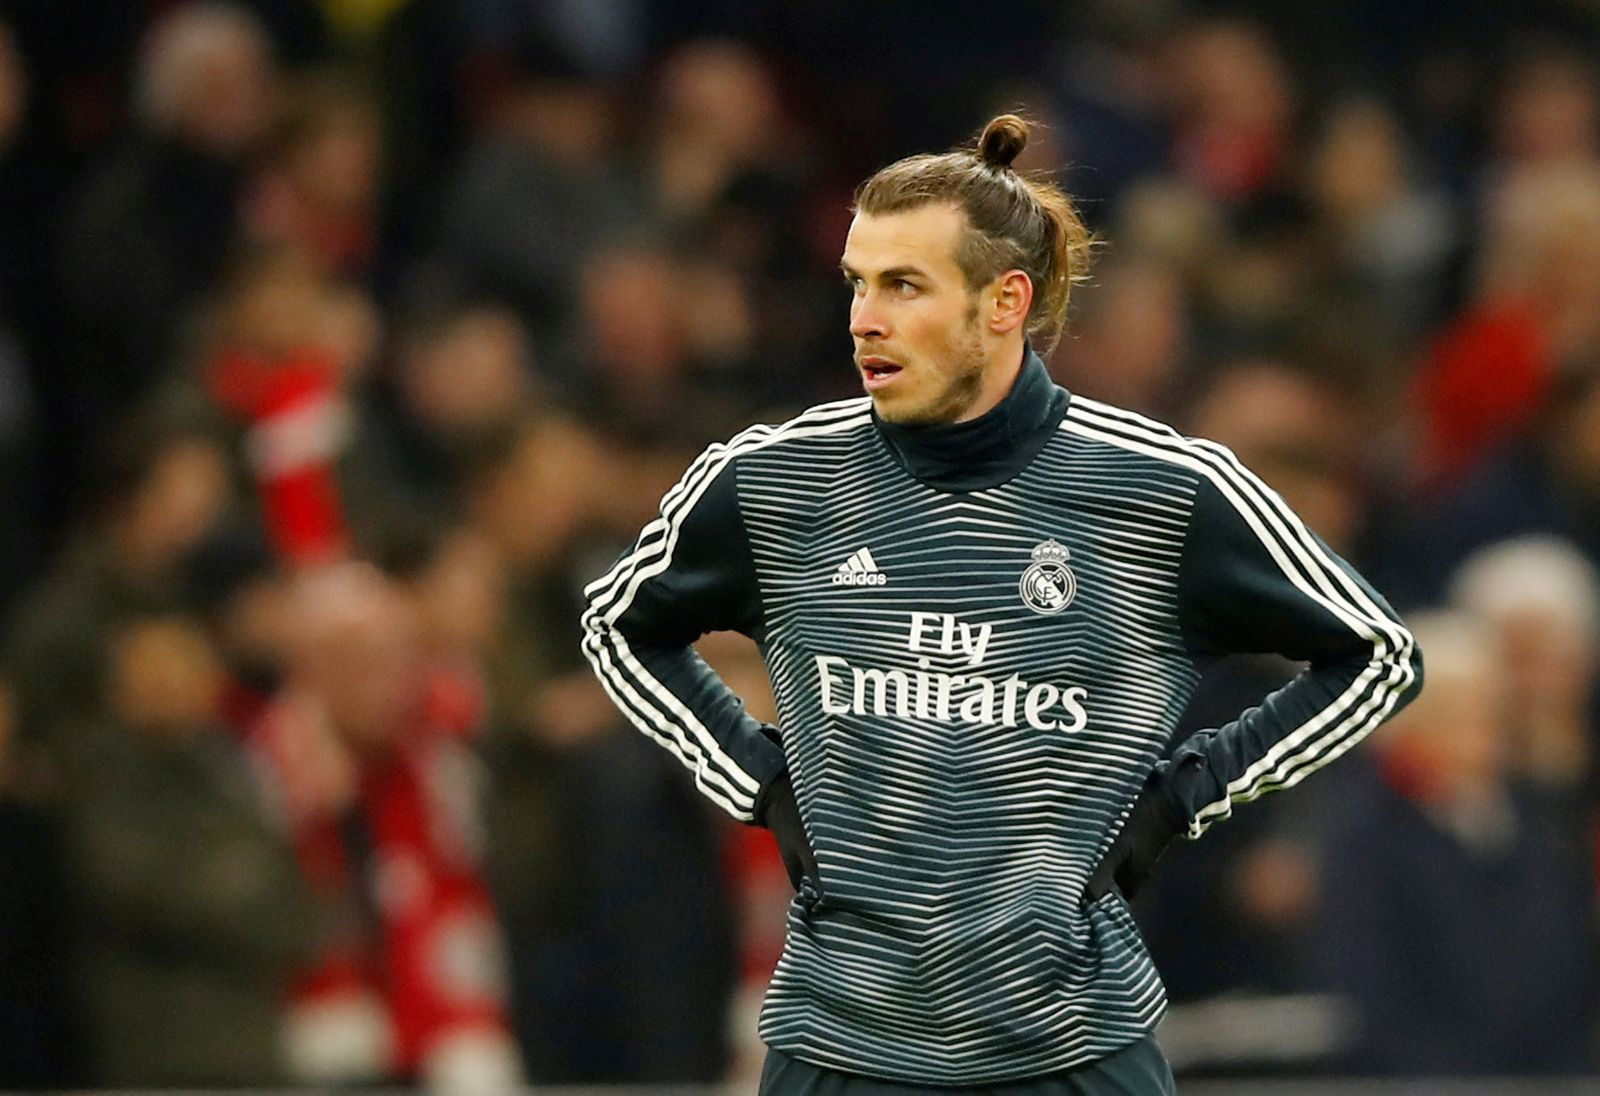 SOCCER-CHAMPIONS-MAD/BALE